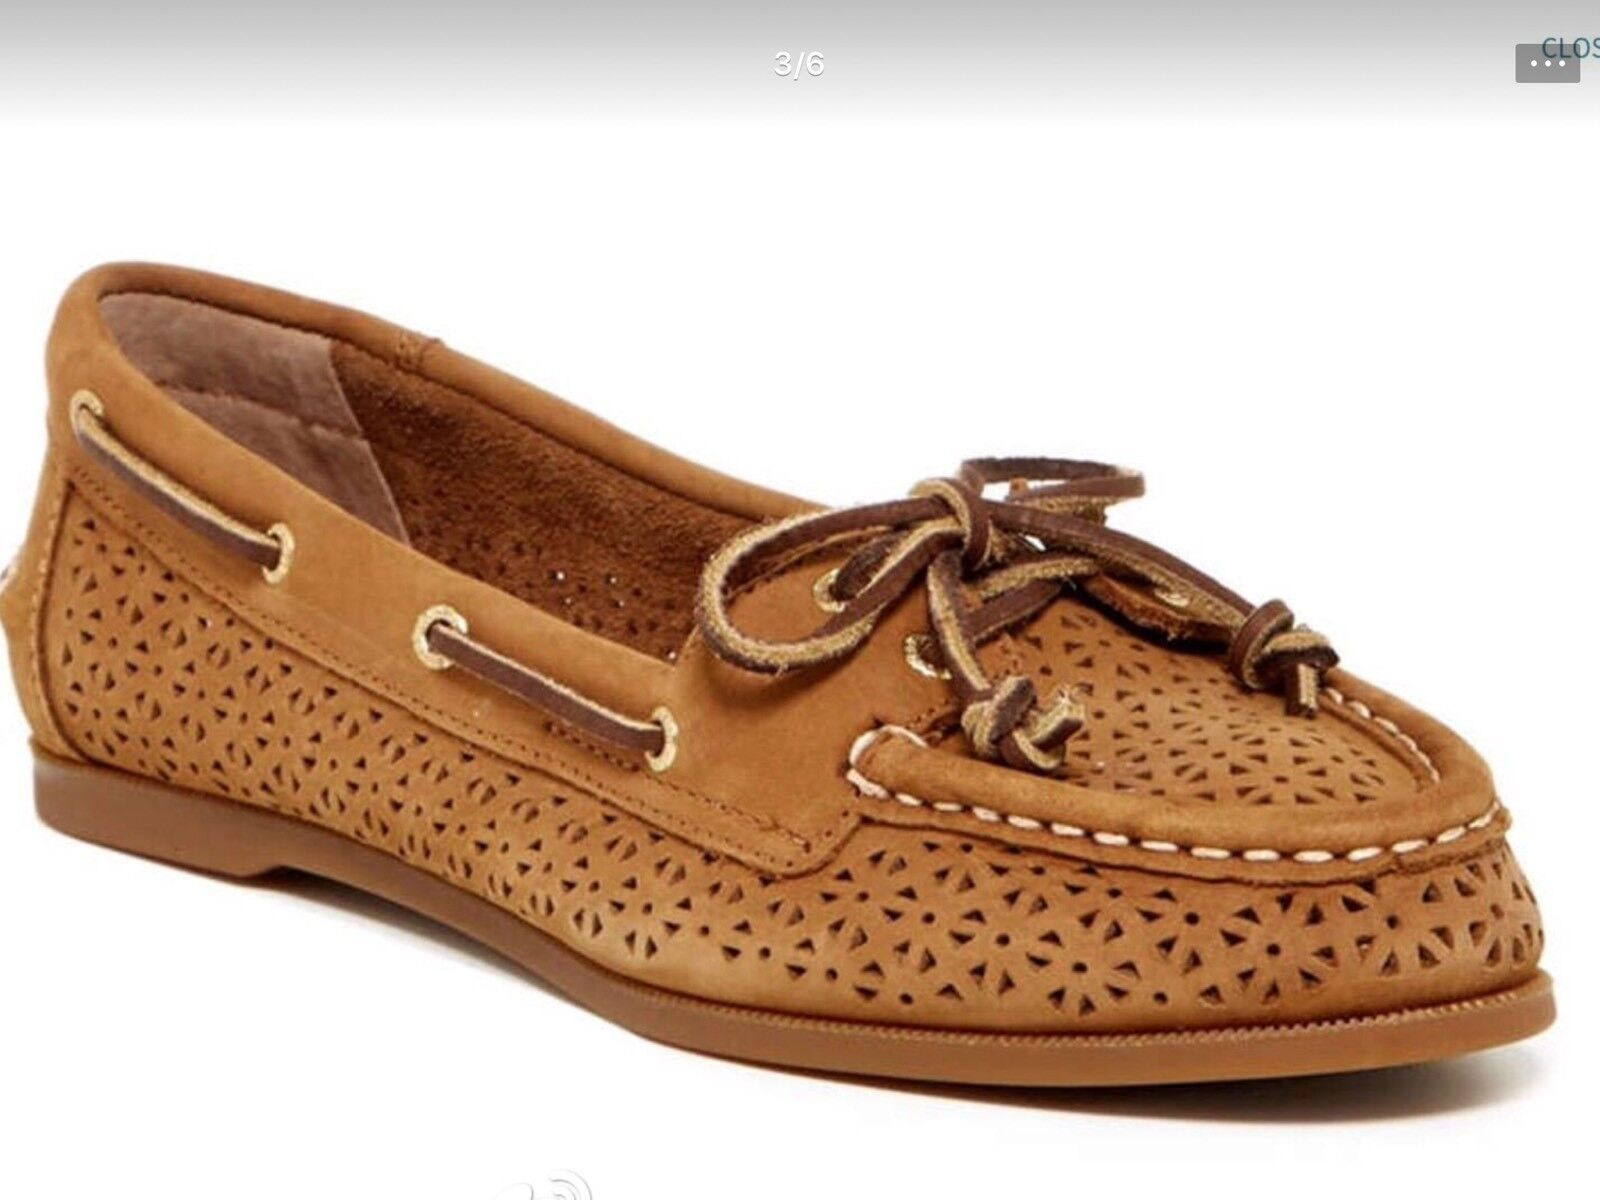 SPERRY AUDREY   Perforated Boat shoes in Cognac , Coral Brand New MSRP  99